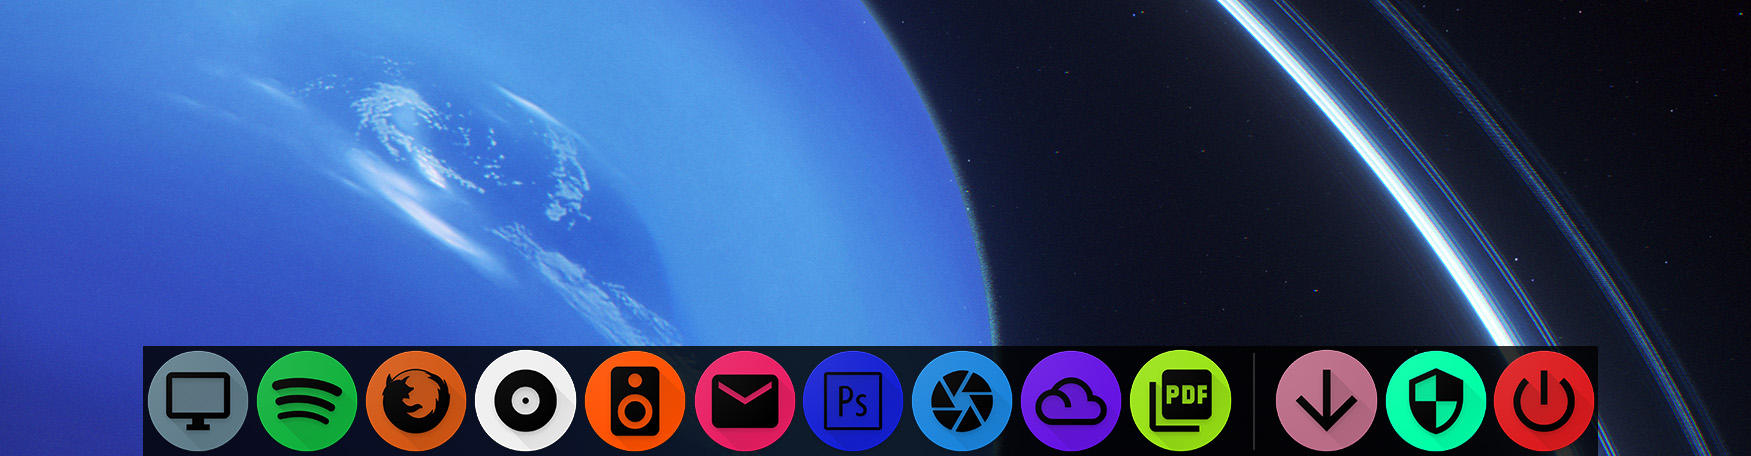 Neptune Dock Theme v 1.1 (Rocket/Nexus Dock)